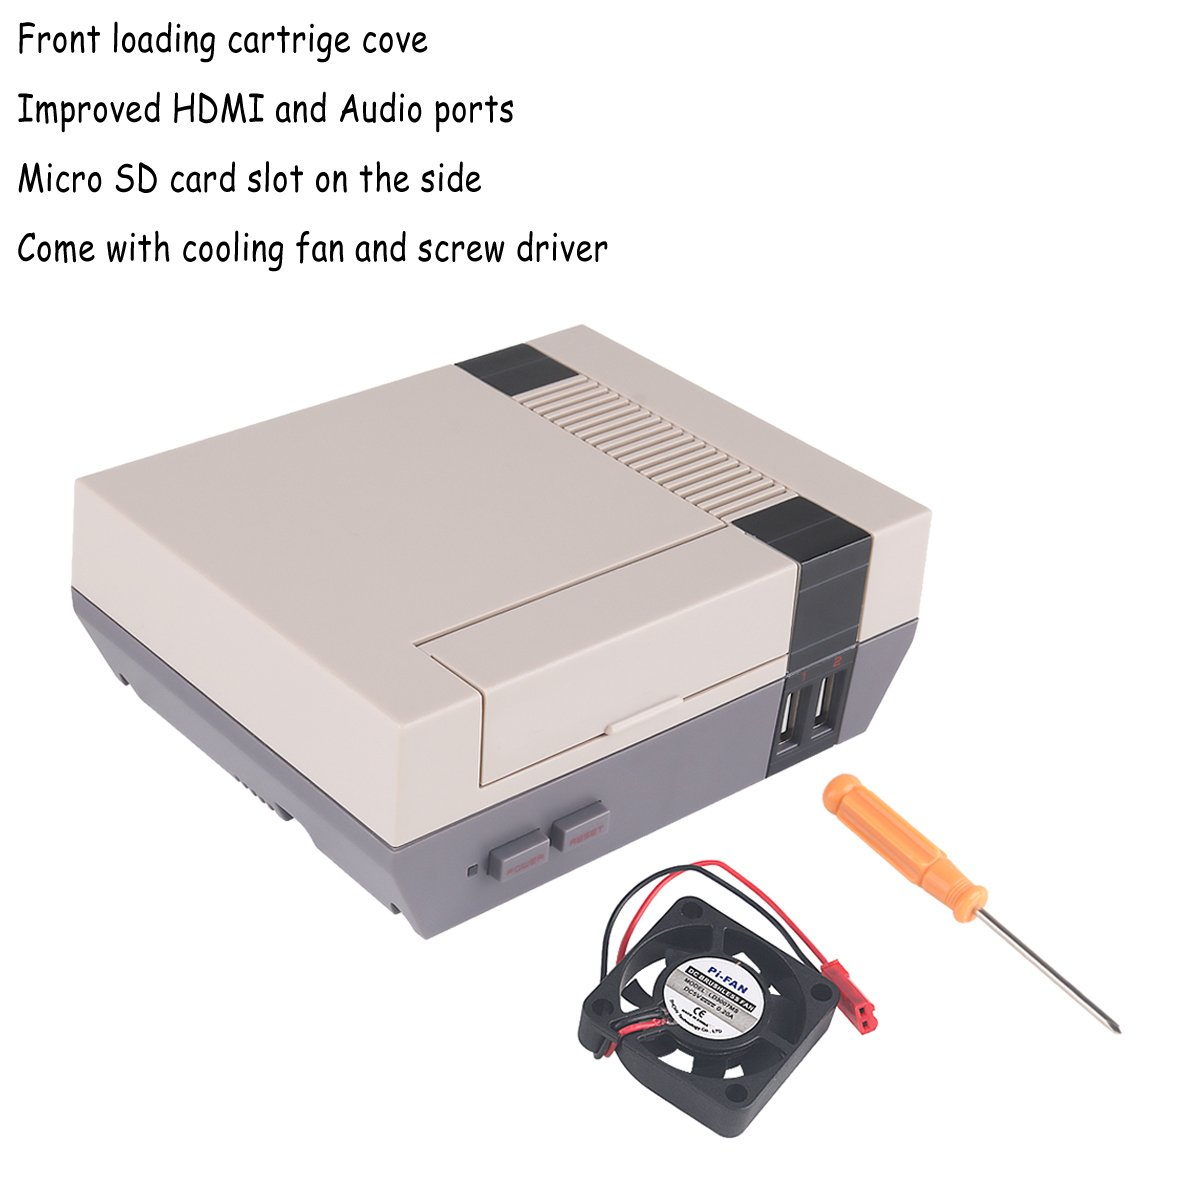 MakerFocus NESPi Case, Retroflag Nespi Case, Raspberry Pi 3 NES FC Style Case with Cooling Fan and Screw Driver Enclosure Compatible with Raspberry Pi 3, 2 and B+